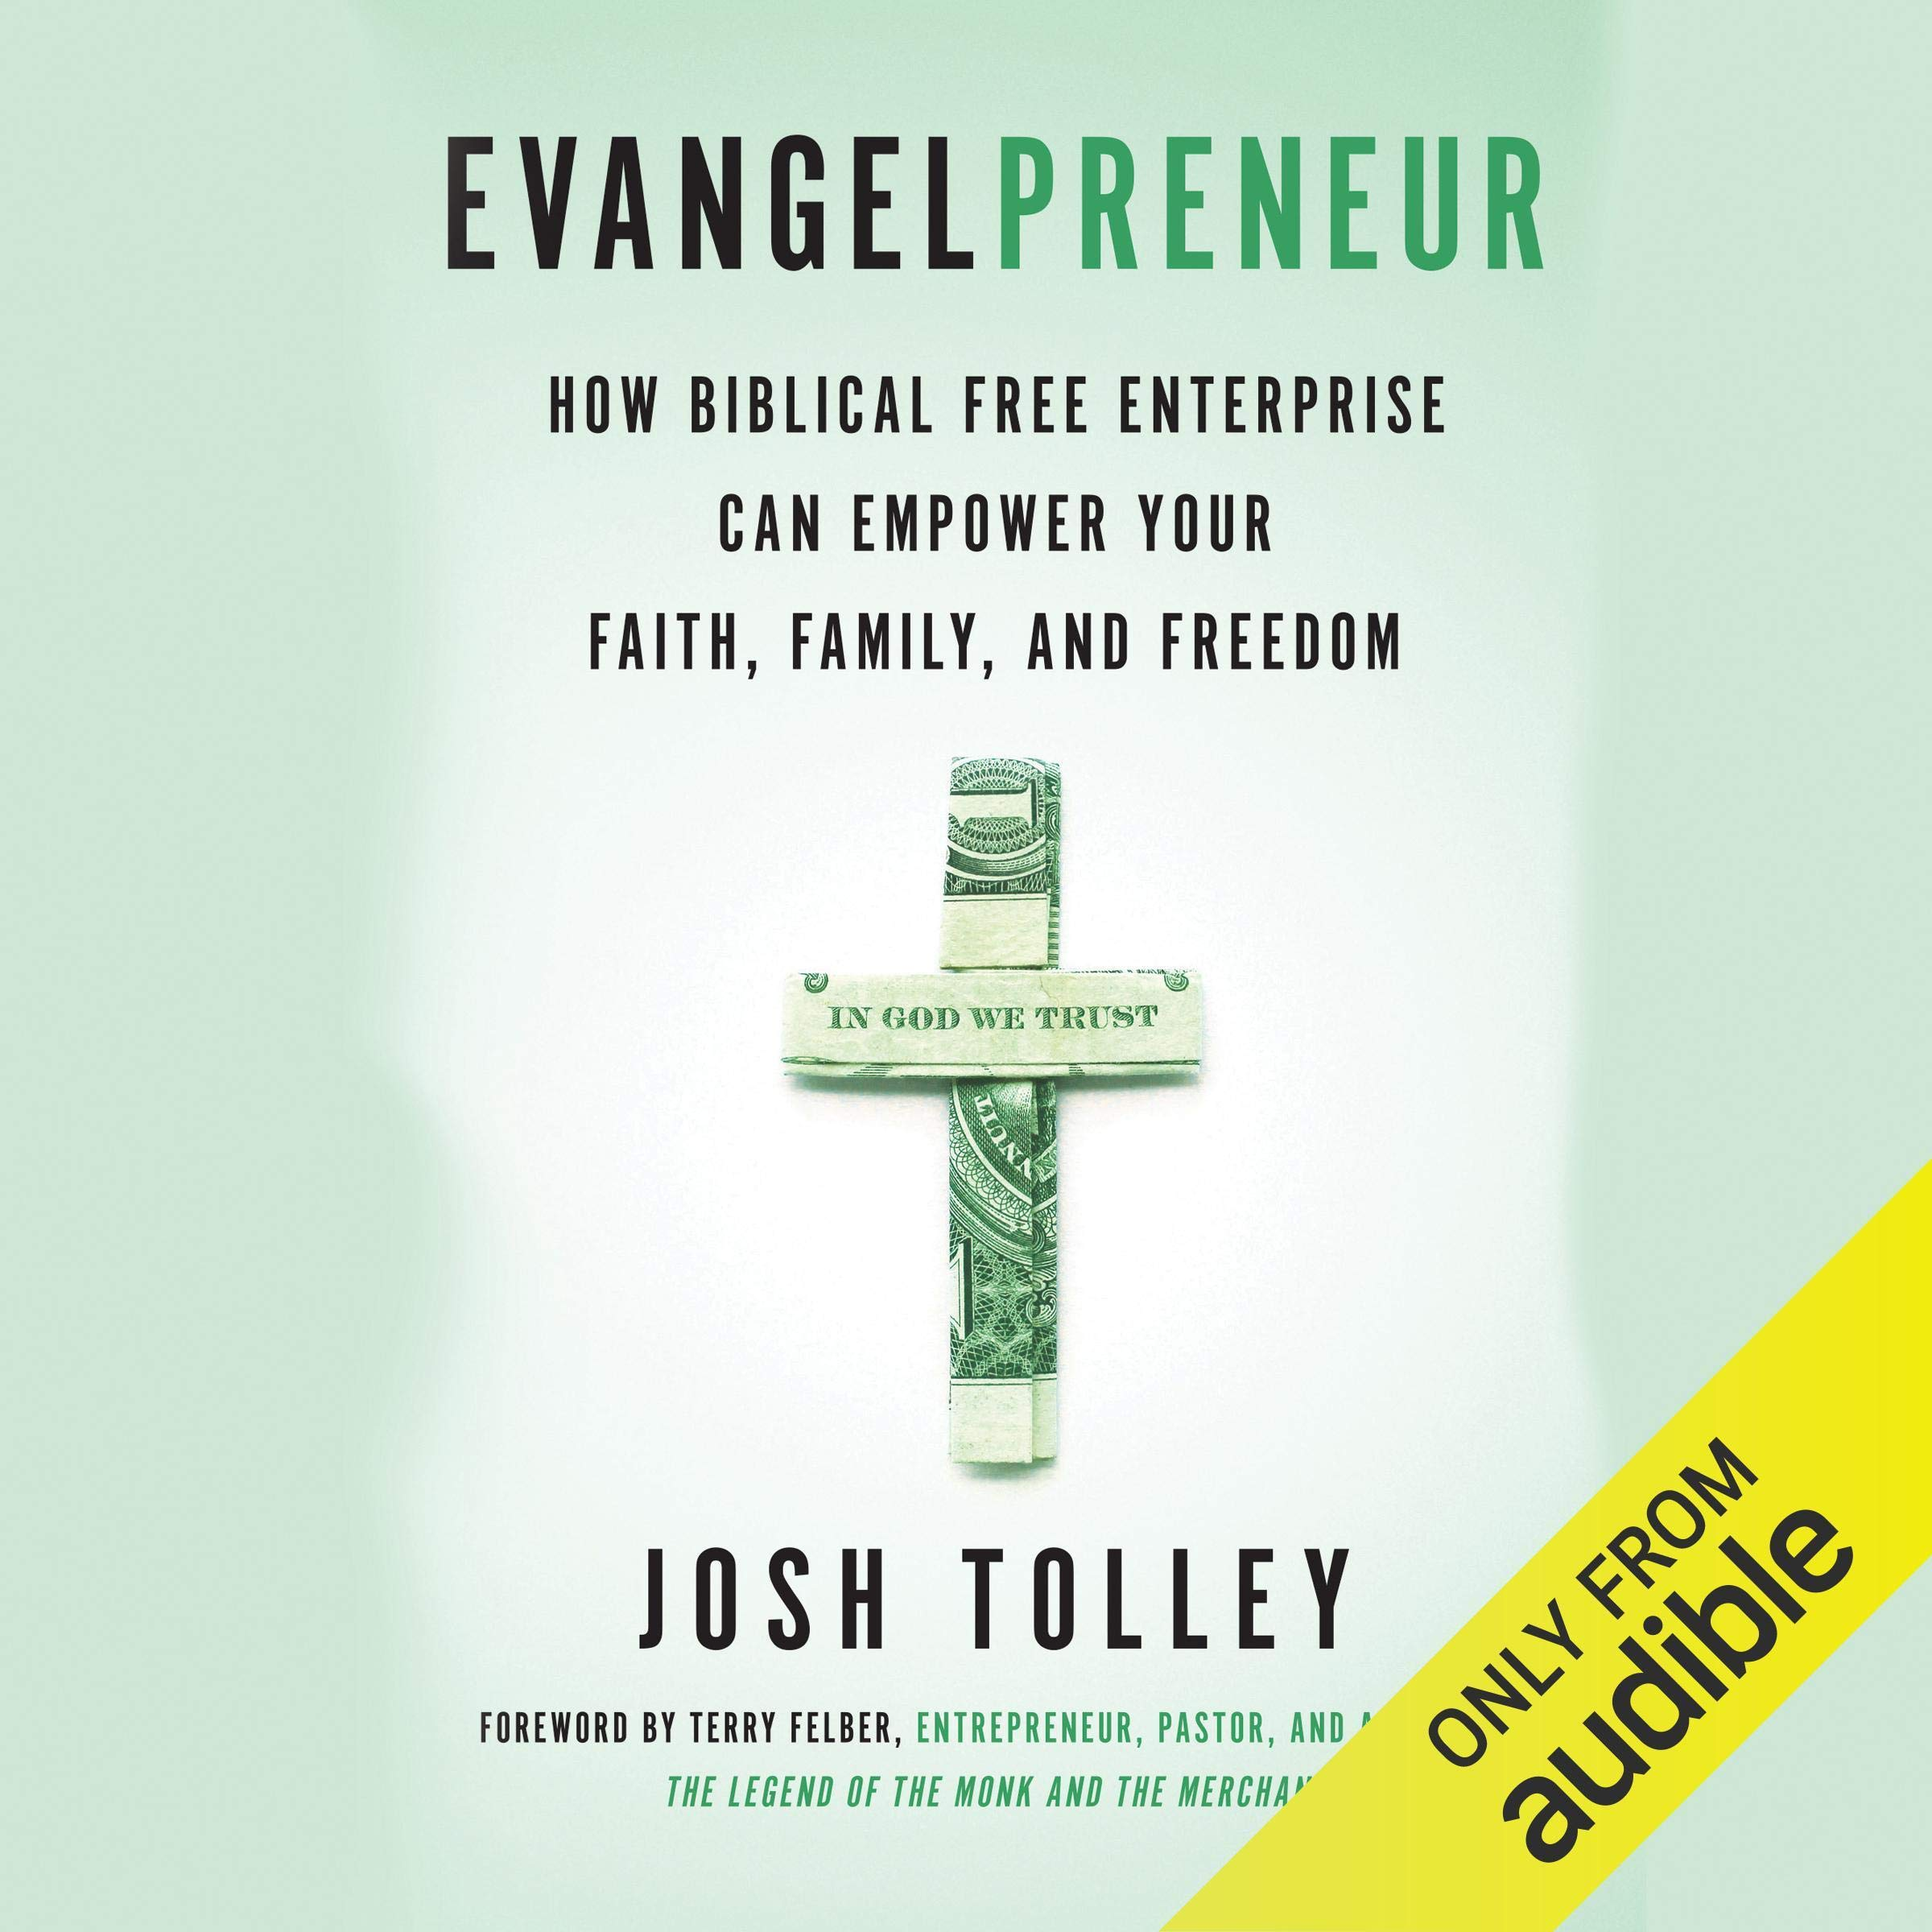 Image OfEvangelpreneur: How Biblical Free Enterprise Can Empower Your Faith, Family, And Freedom